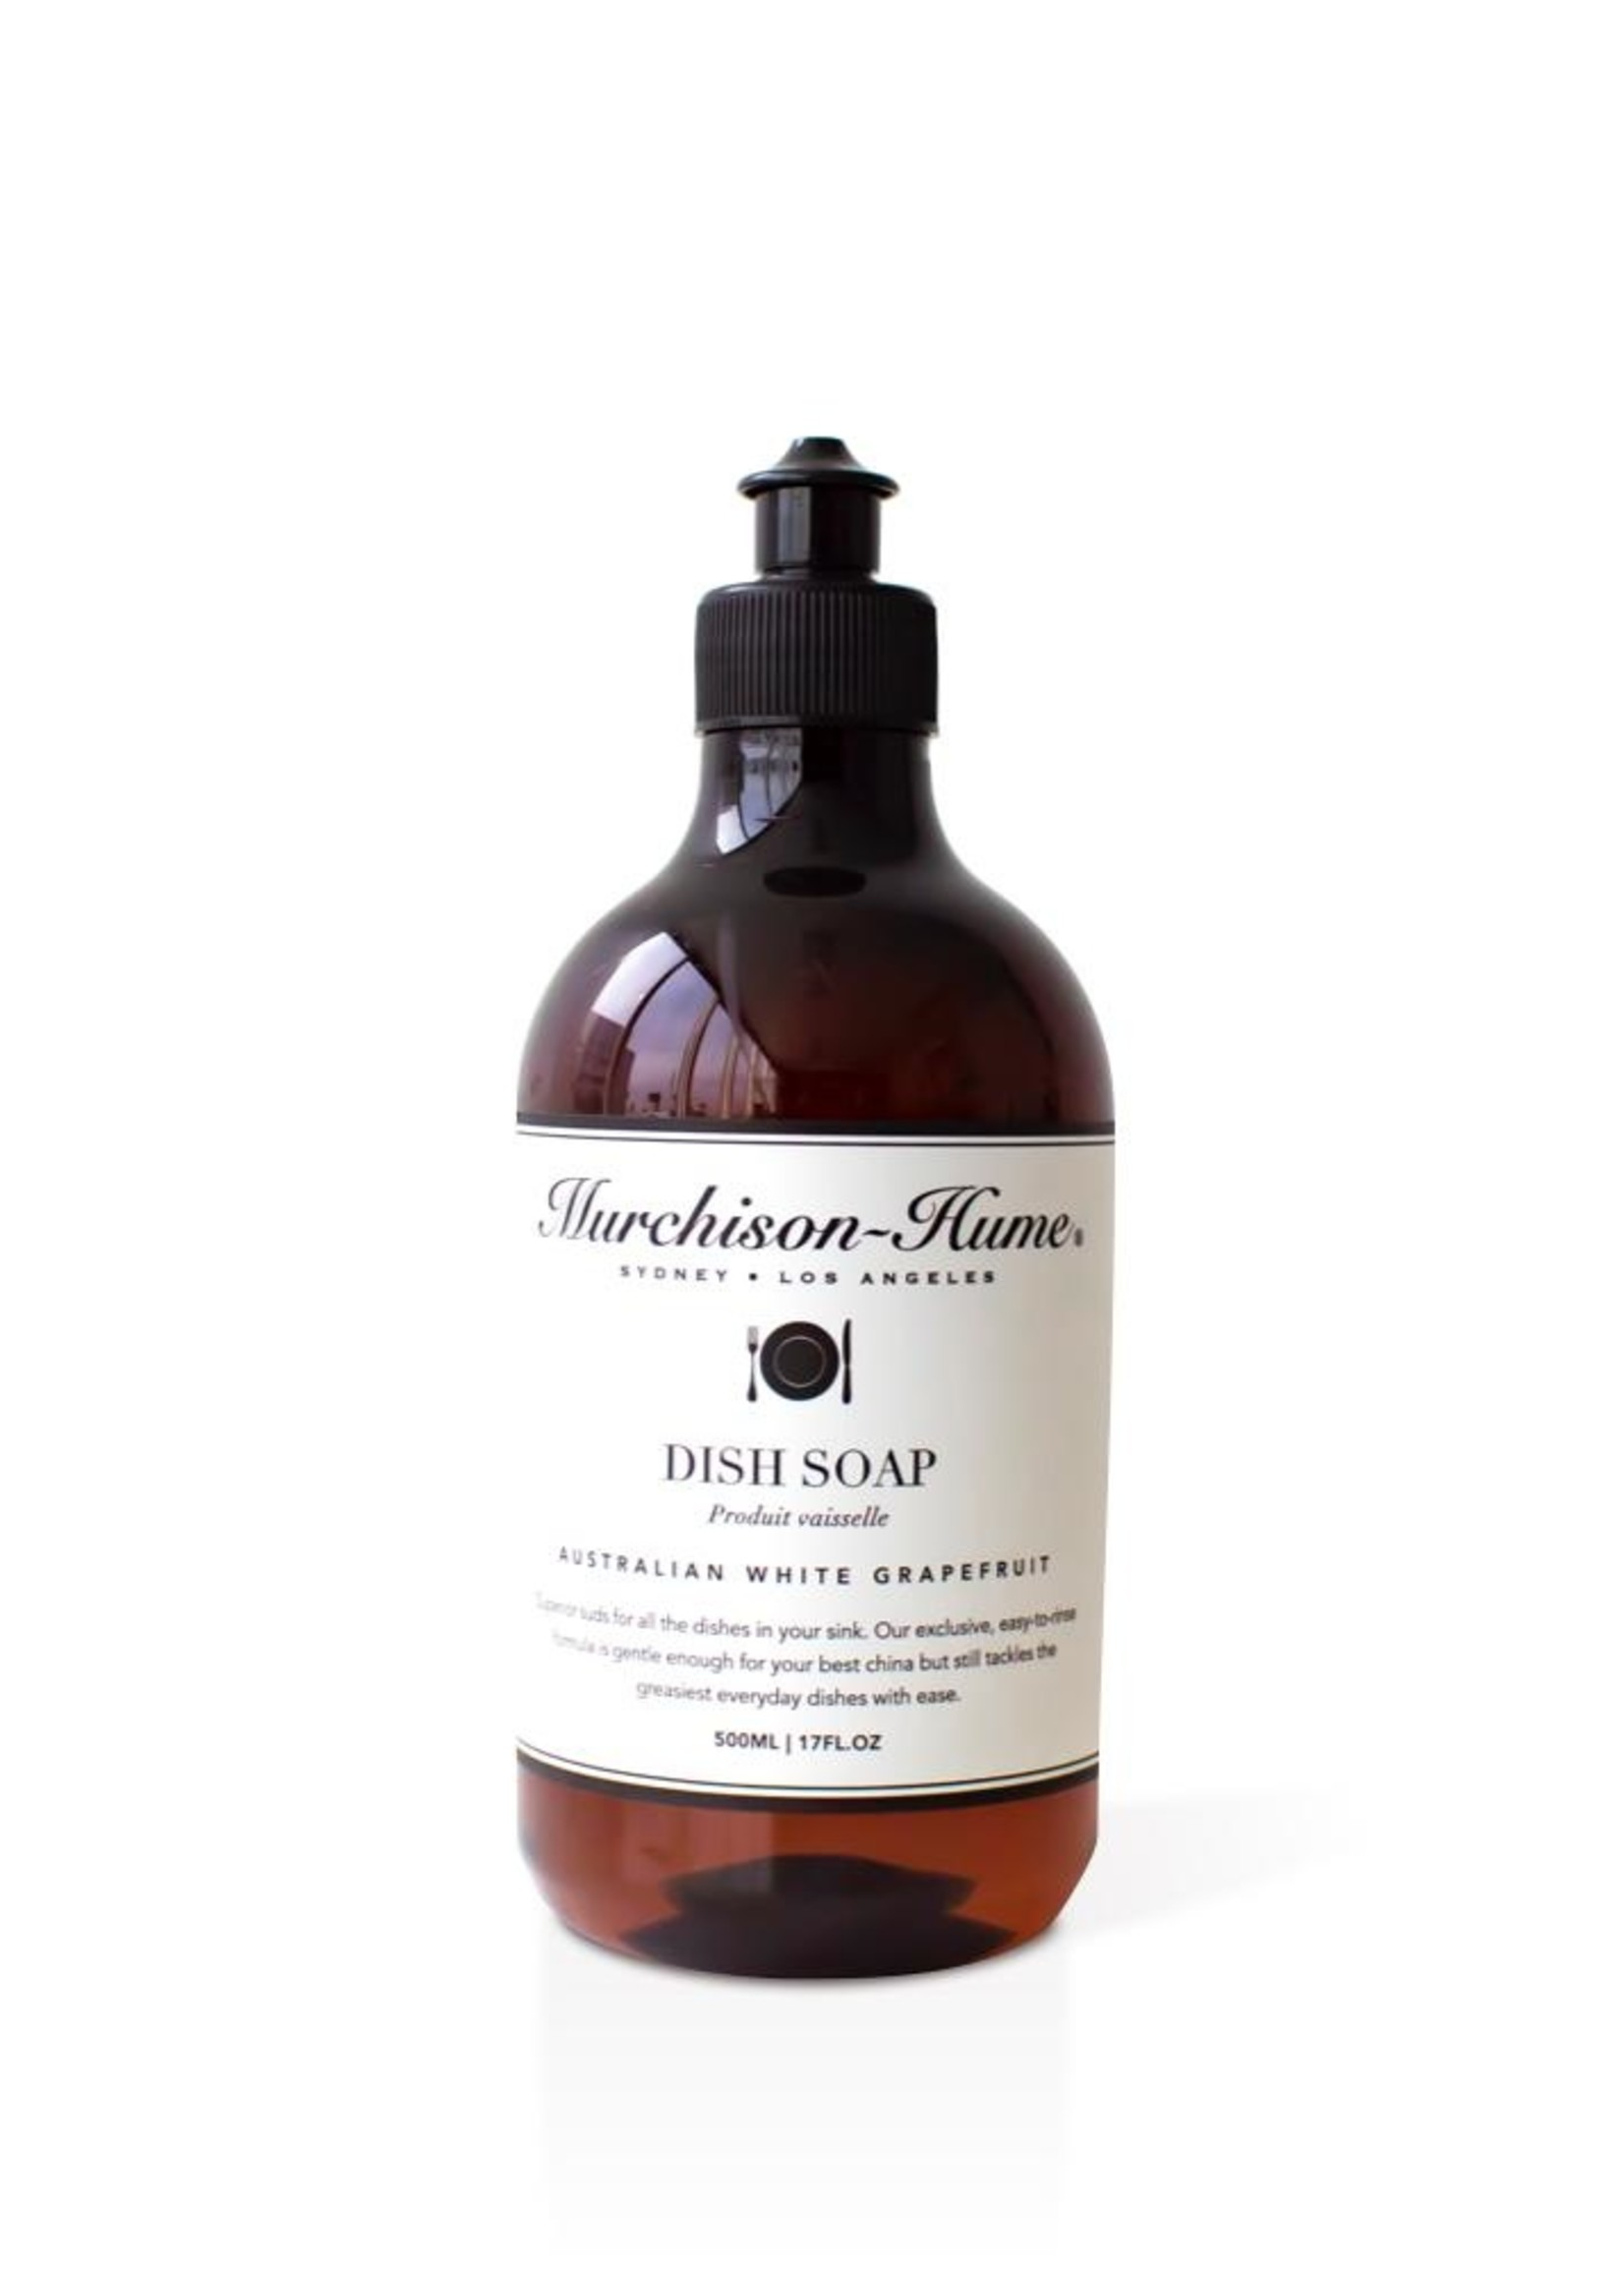 Murchison-Hume Murchison-Hume Heirloom Dish Soap 17oz  AWG